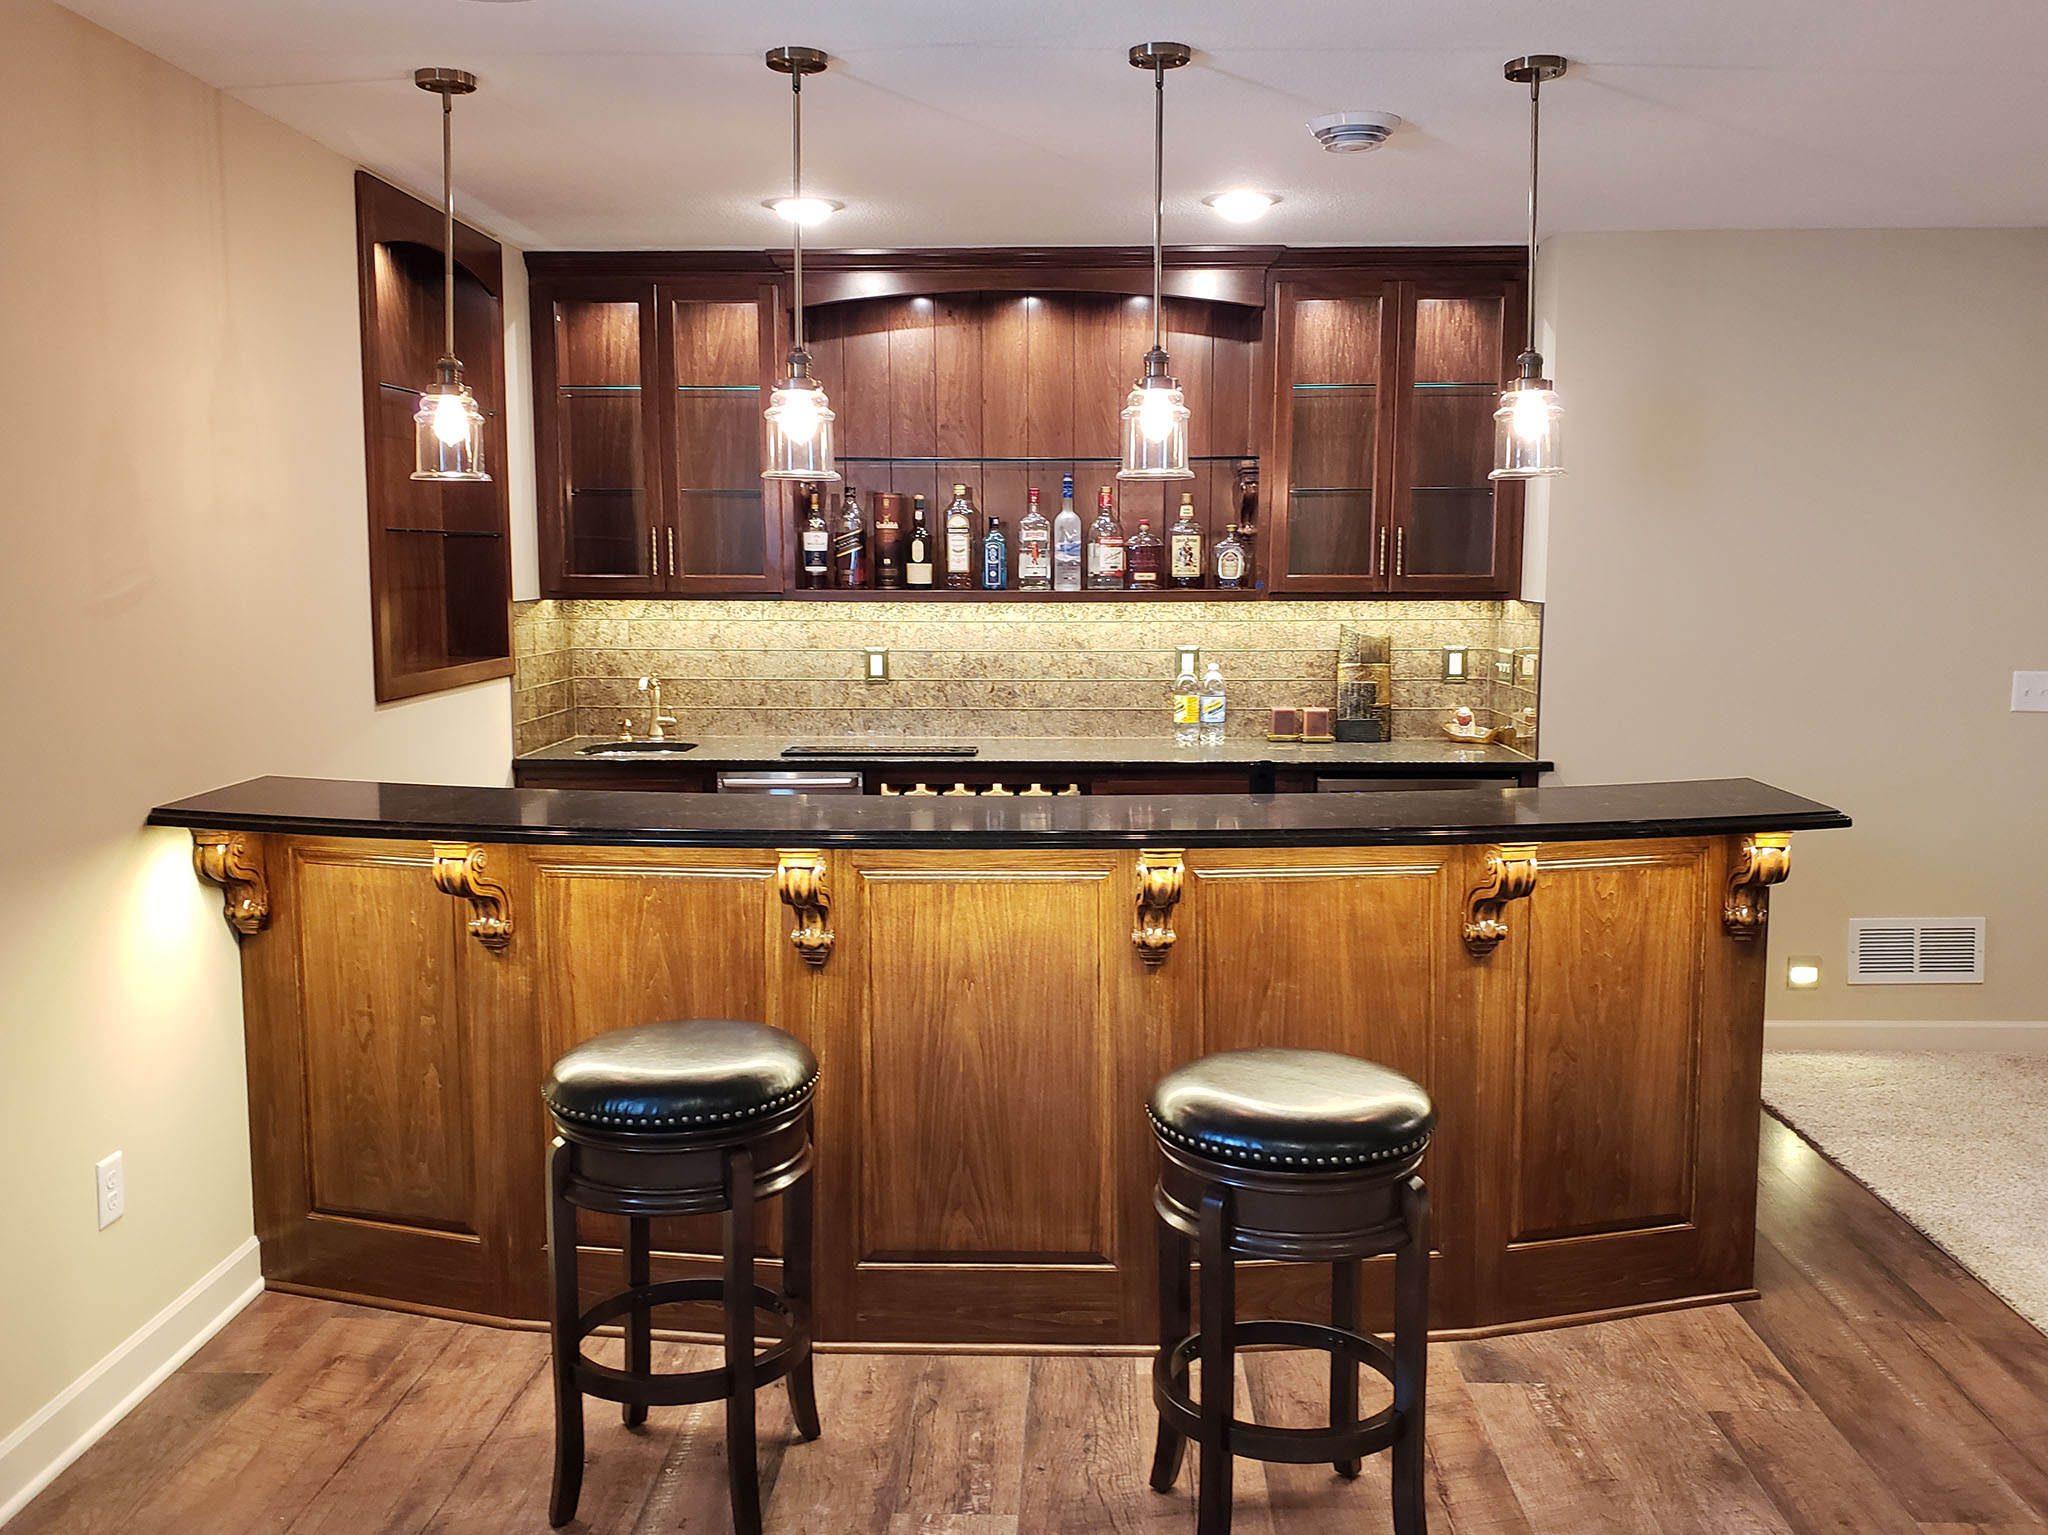 Basement bar area with curved bartop, stone backsplash, custom built-in cabinets with glass doors and shelves